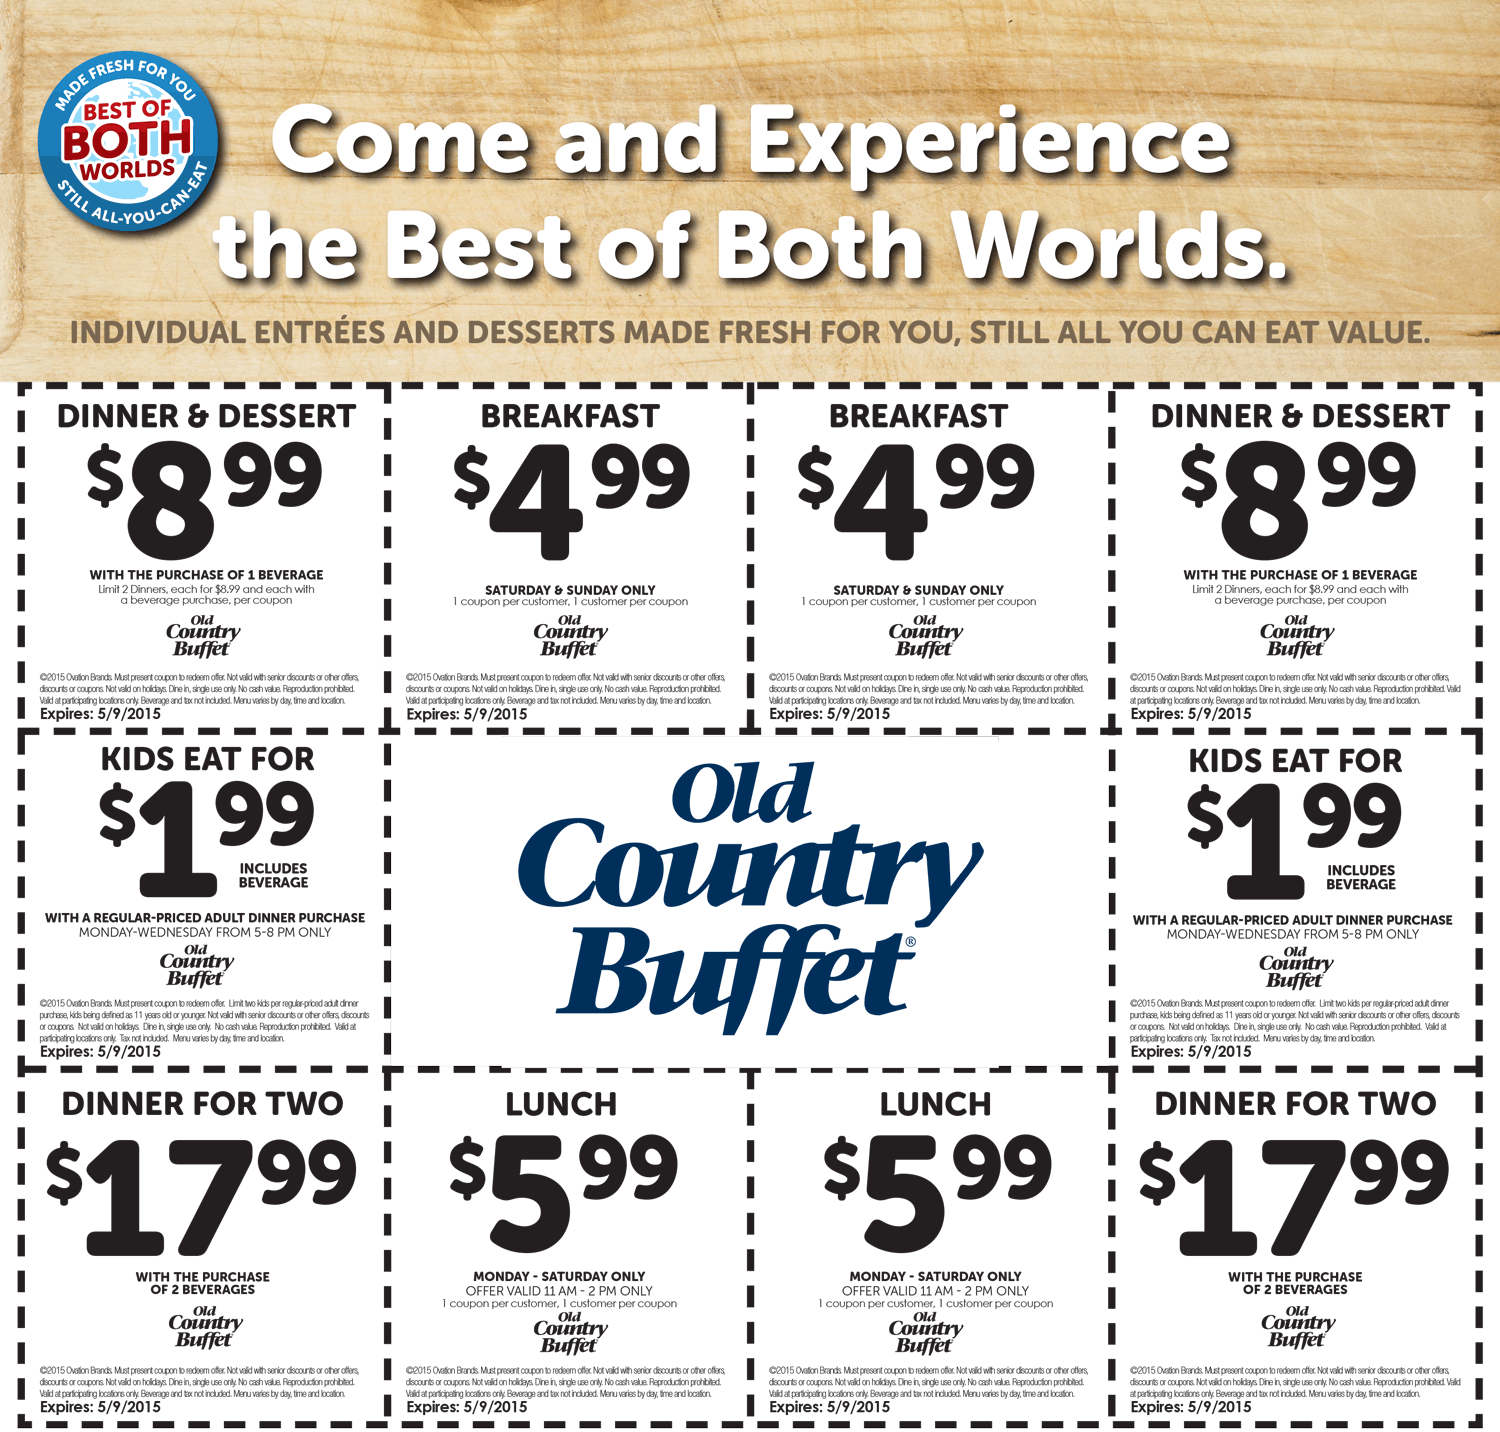 Old Country Buffet Coupon January 2017 $2 kids, $5 breakfast, $6 lunch & more at Old Country Buffet